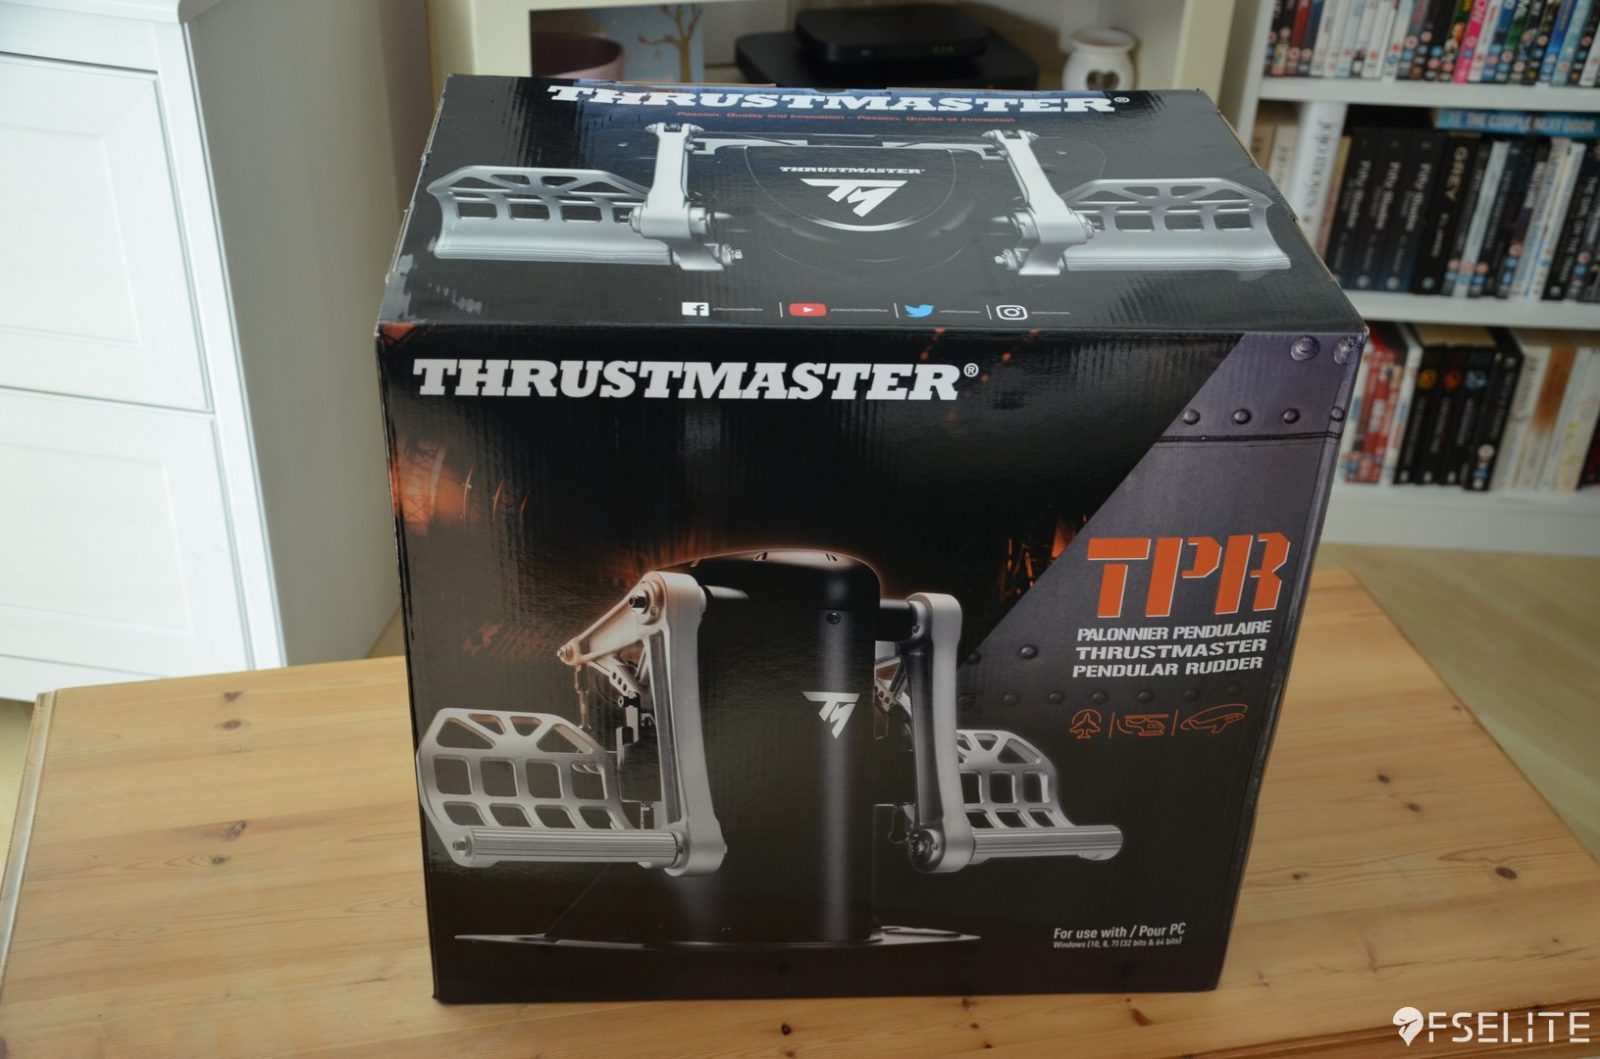 Thrustmaster TPR Pedal Set: The FSElite Review – FSElite